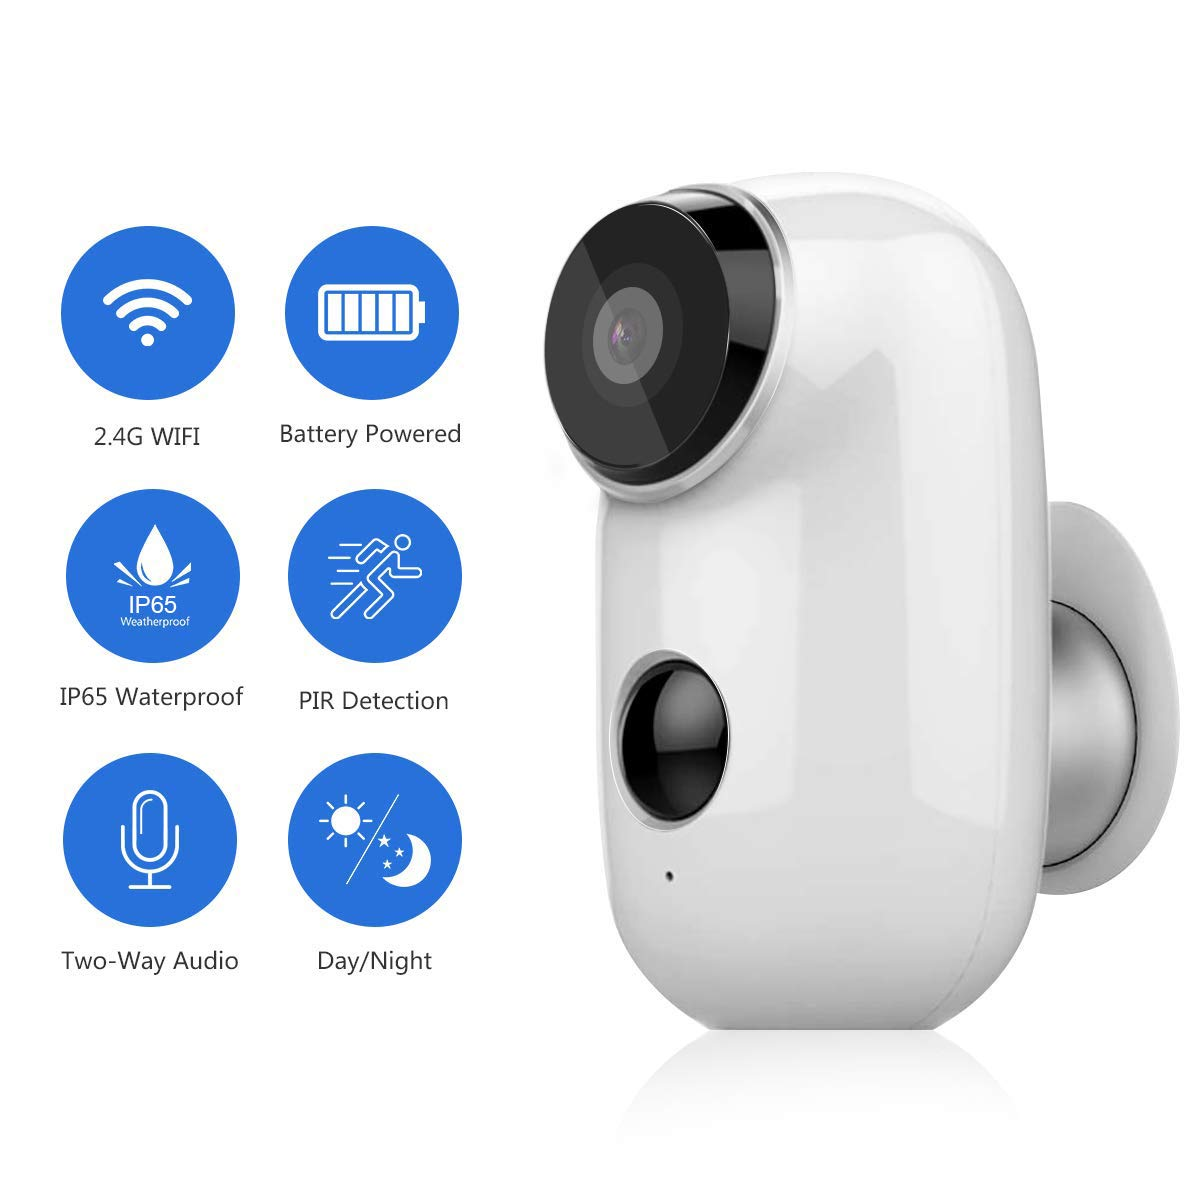 Wireless Security Camera HD 1080P Abowone Rechargeable Battery Powered Camera WIFI IP Camera Wire-Free Waterproof Indoor Outdoor Security Camera Two Way Audio PIR Sensor Body Detection HD Night Vision